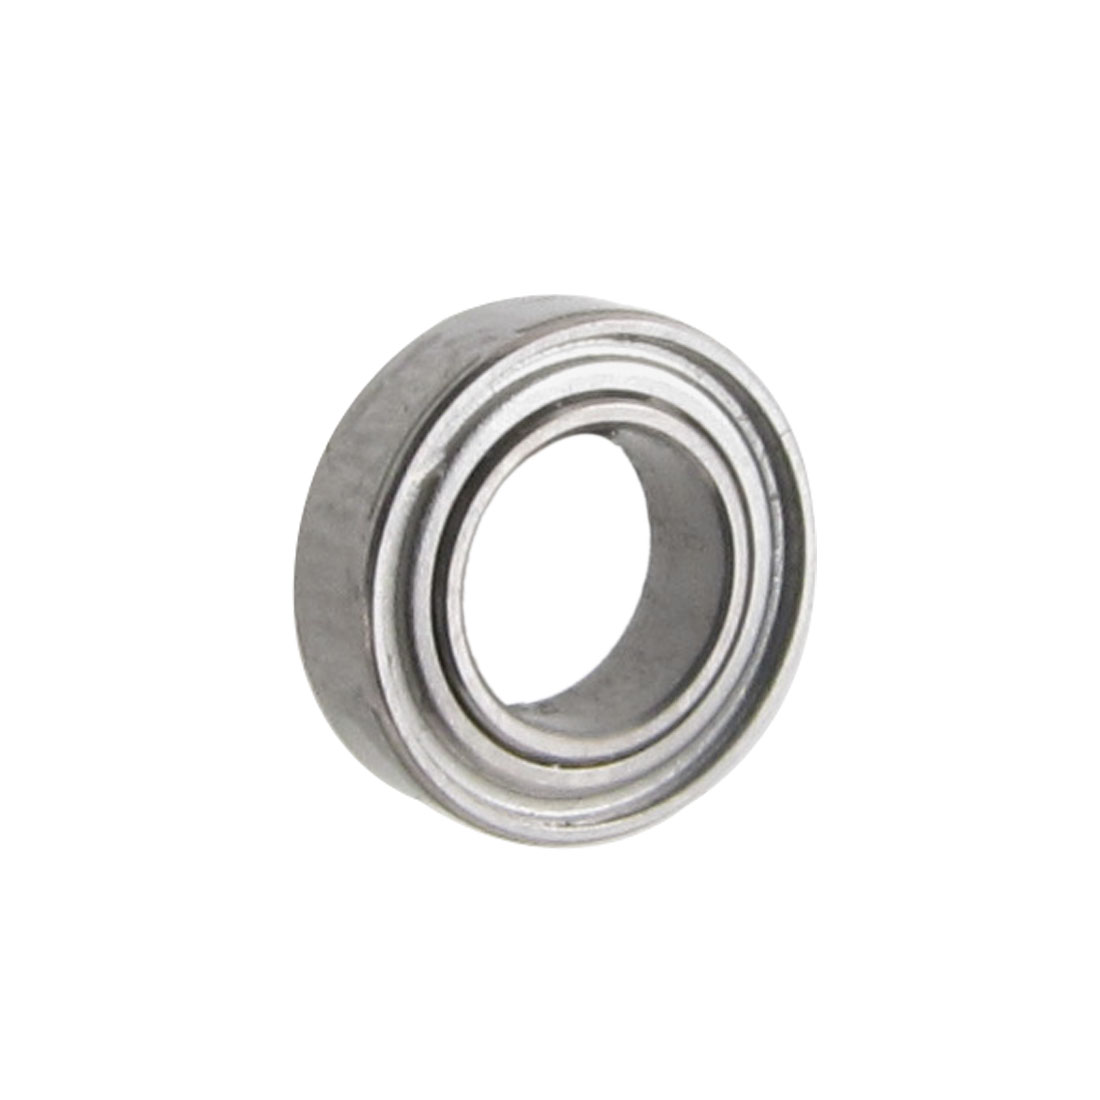 7mm x 4mm x 2mm Silver Tone Metal Open Type Deep Groove Ball Bearing